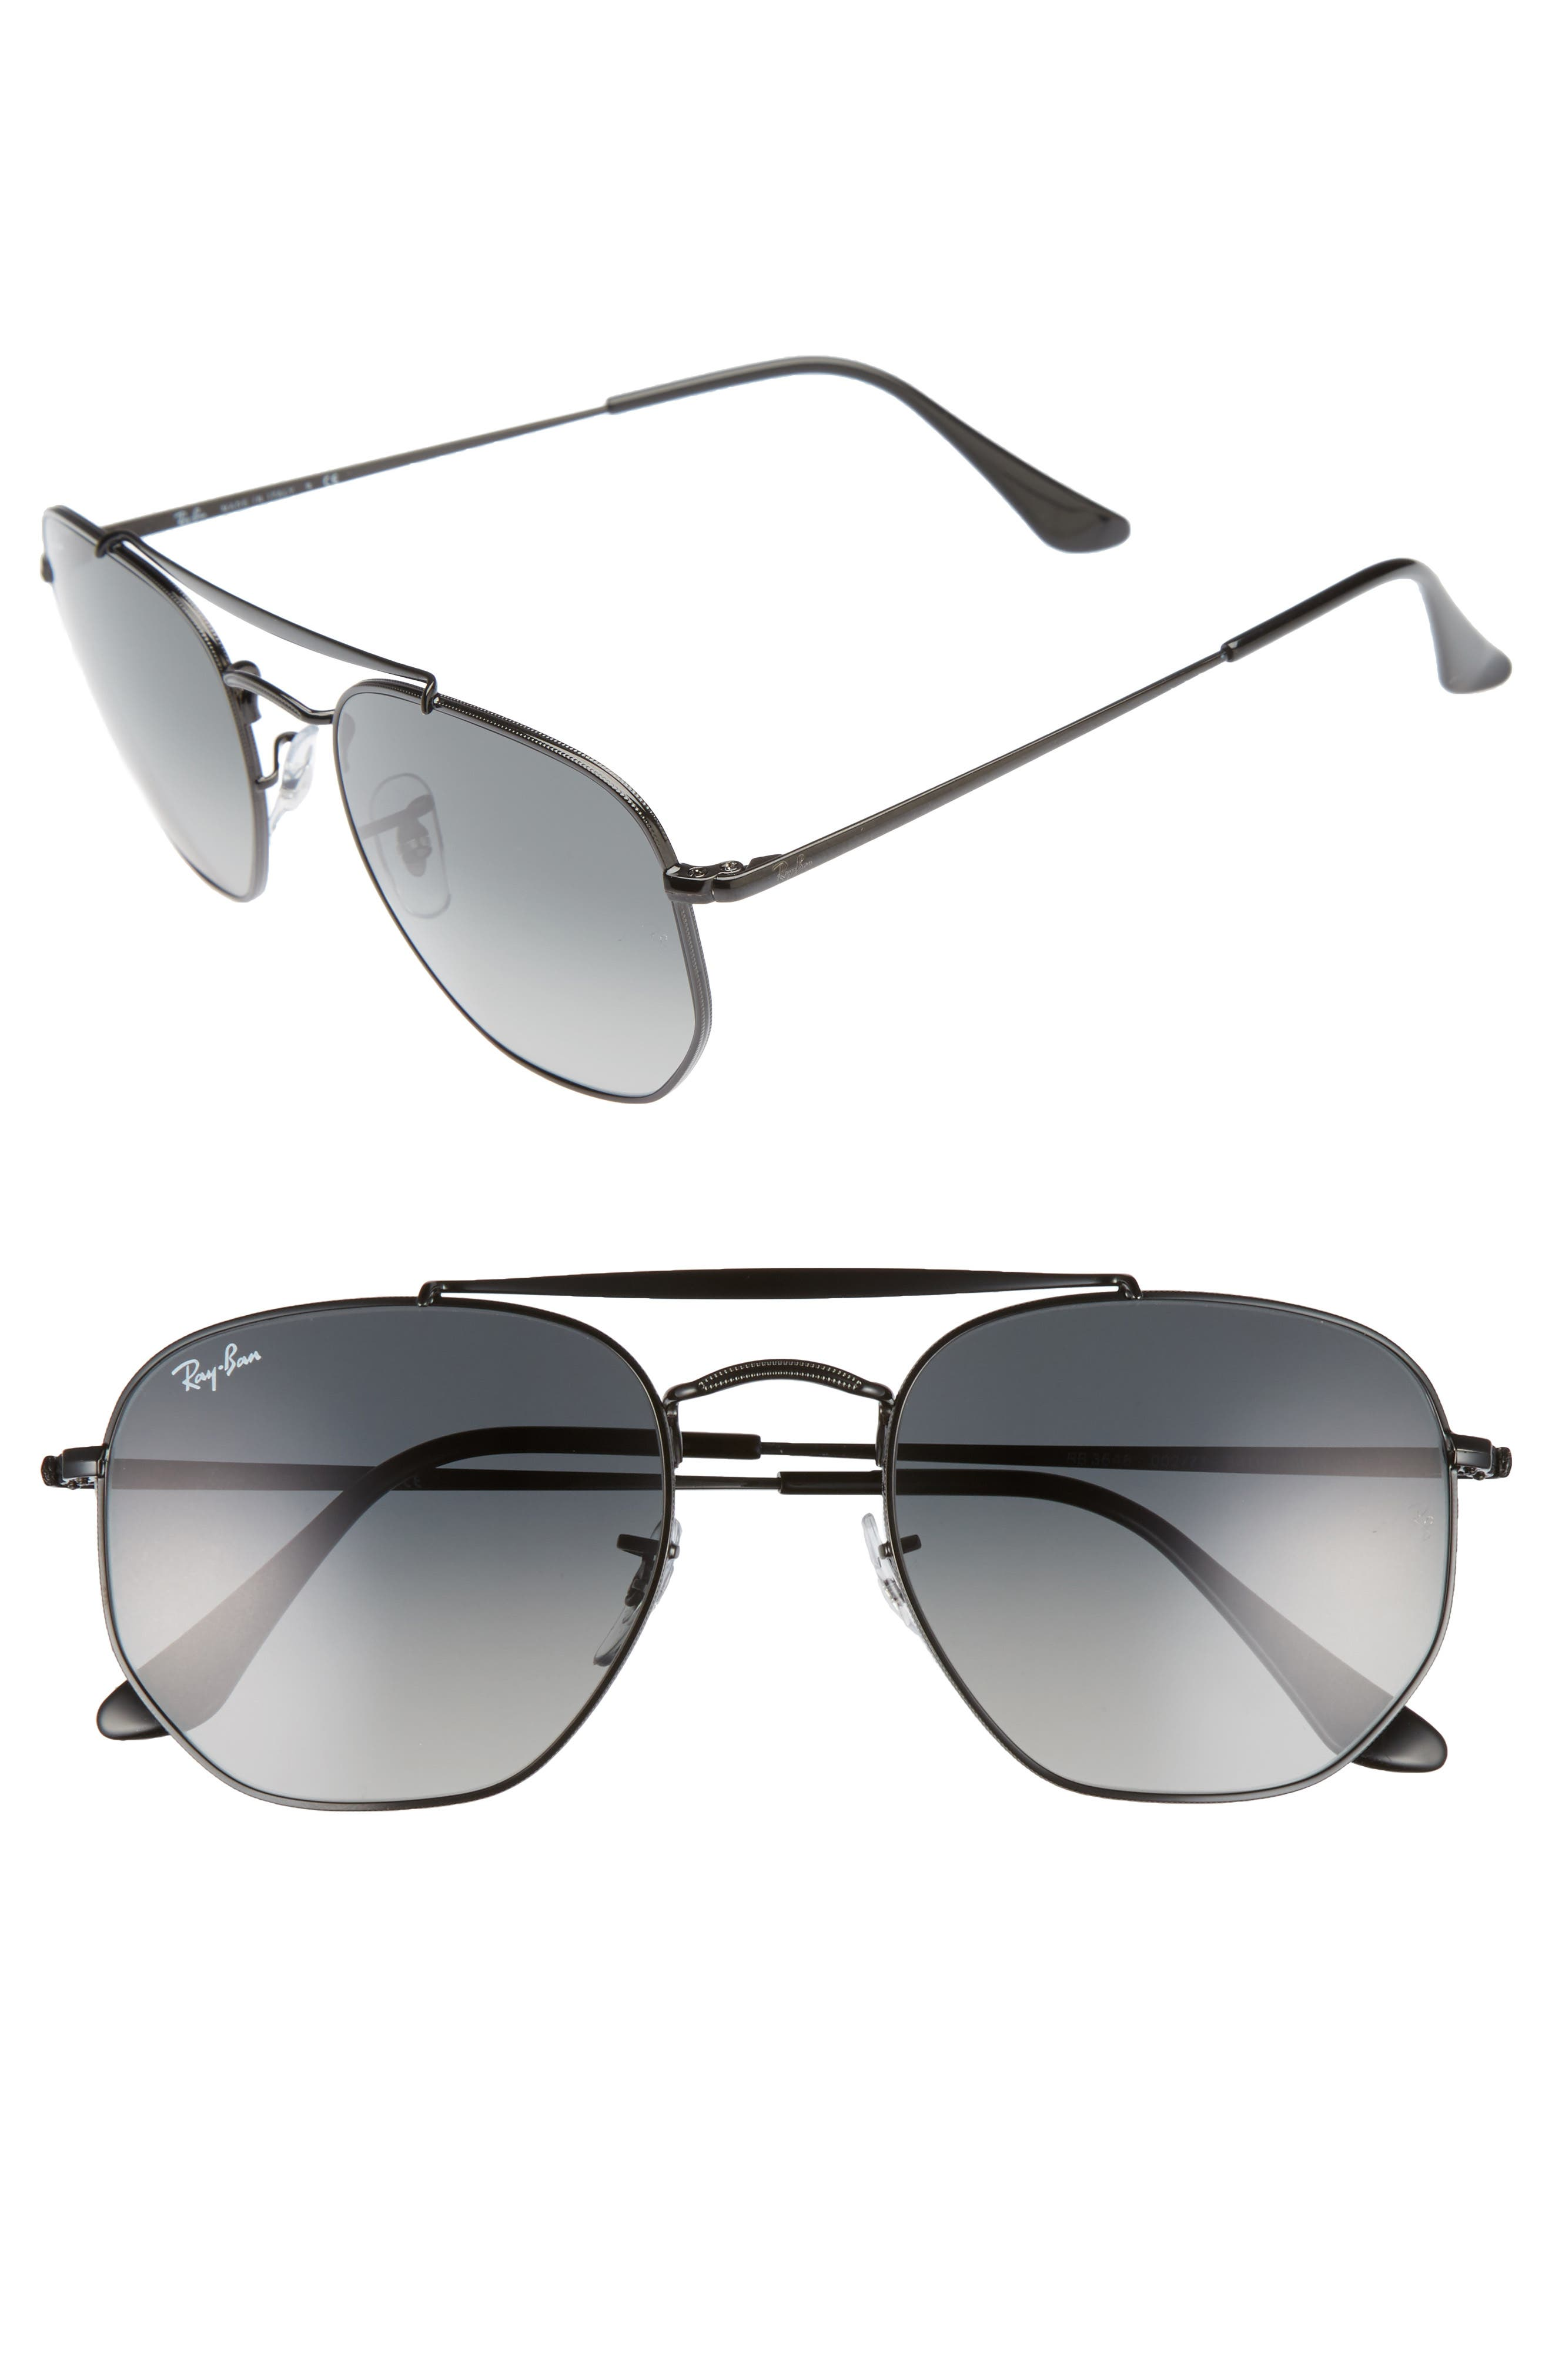 54mm Gradient Sunglasses,                         Main,                         color, 001